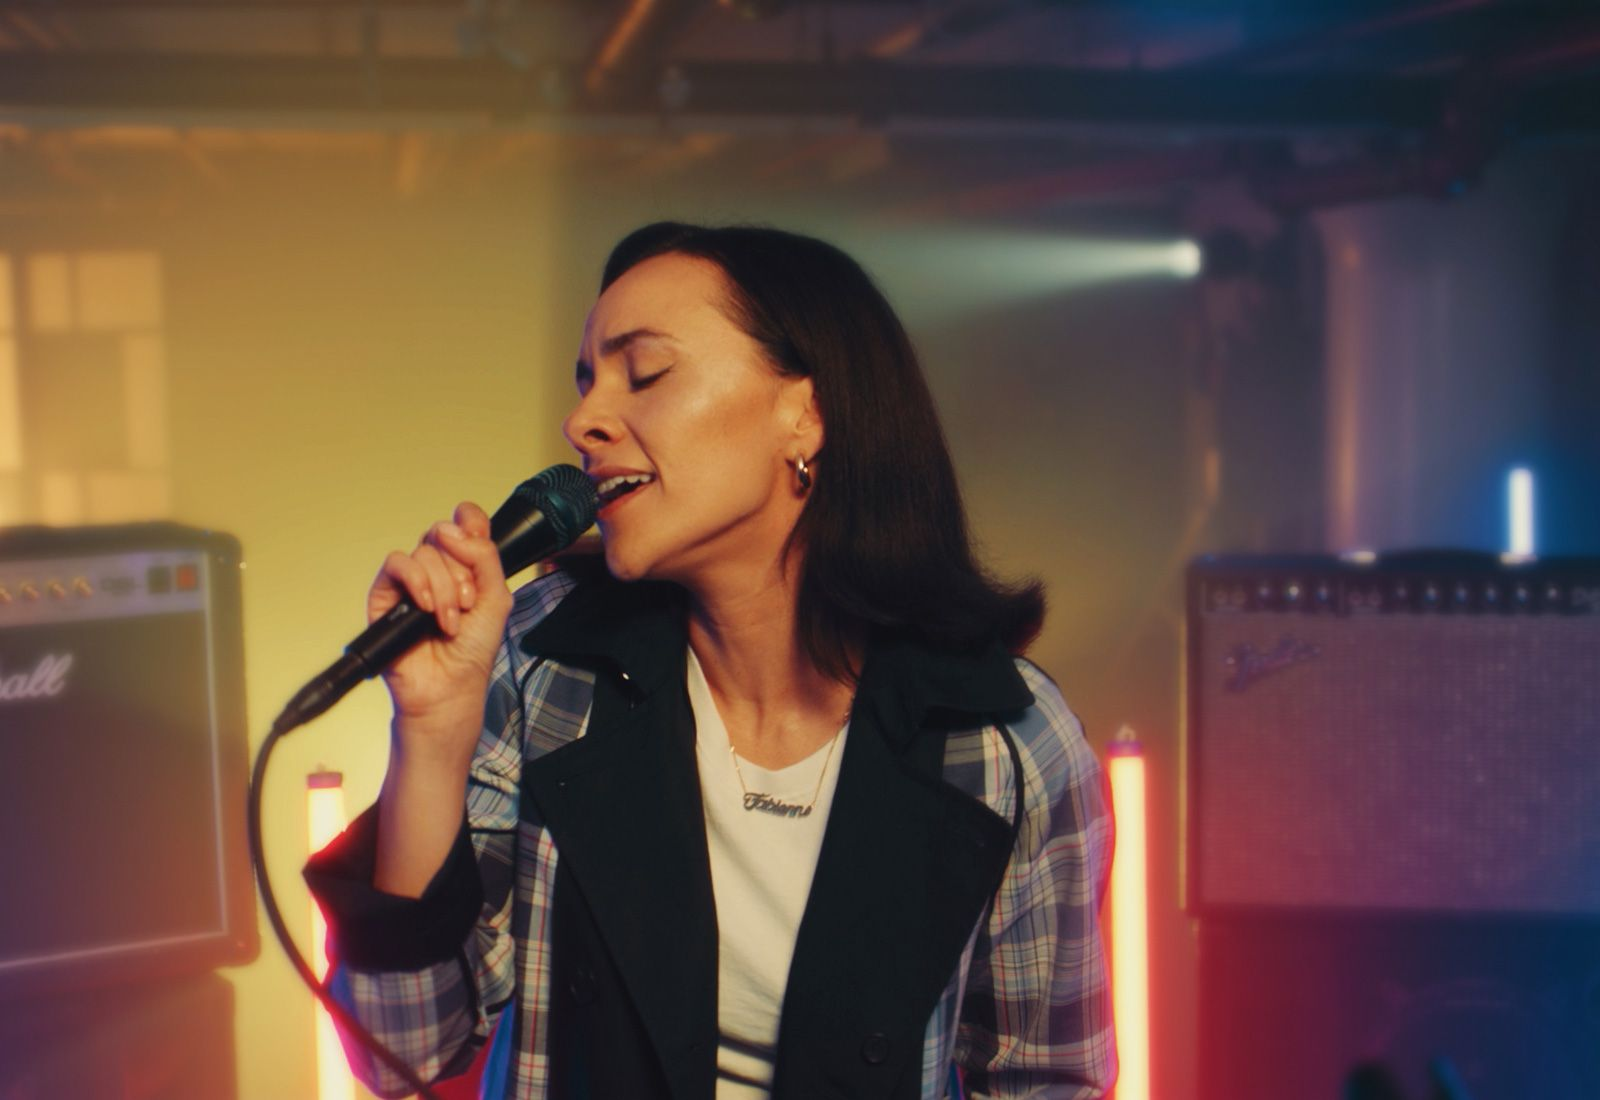 Watch Radiant Children Take Over the Night in This Exclusive Studio Session